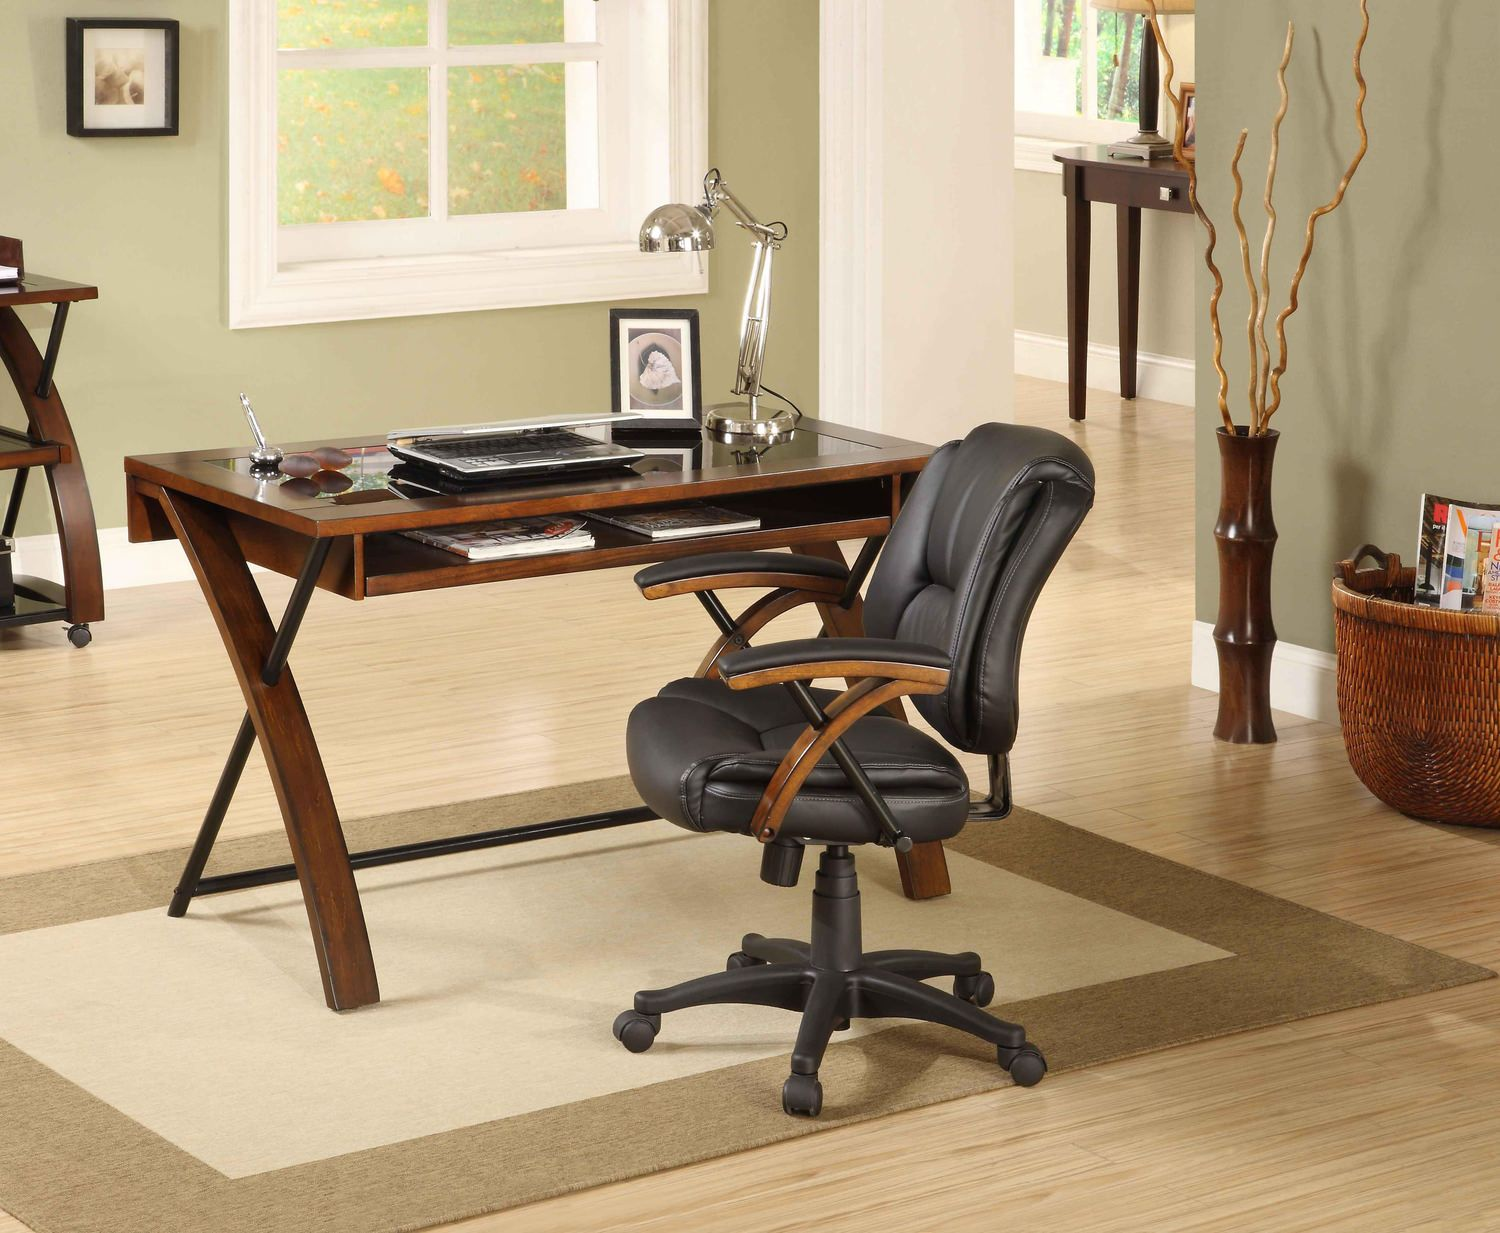 Zeta Desk Chair Pier One Parsons Slipcover Father S Day Gift Ideas Pinterest Hom Furniture Stores In Minneapolis Minnesota Midwest